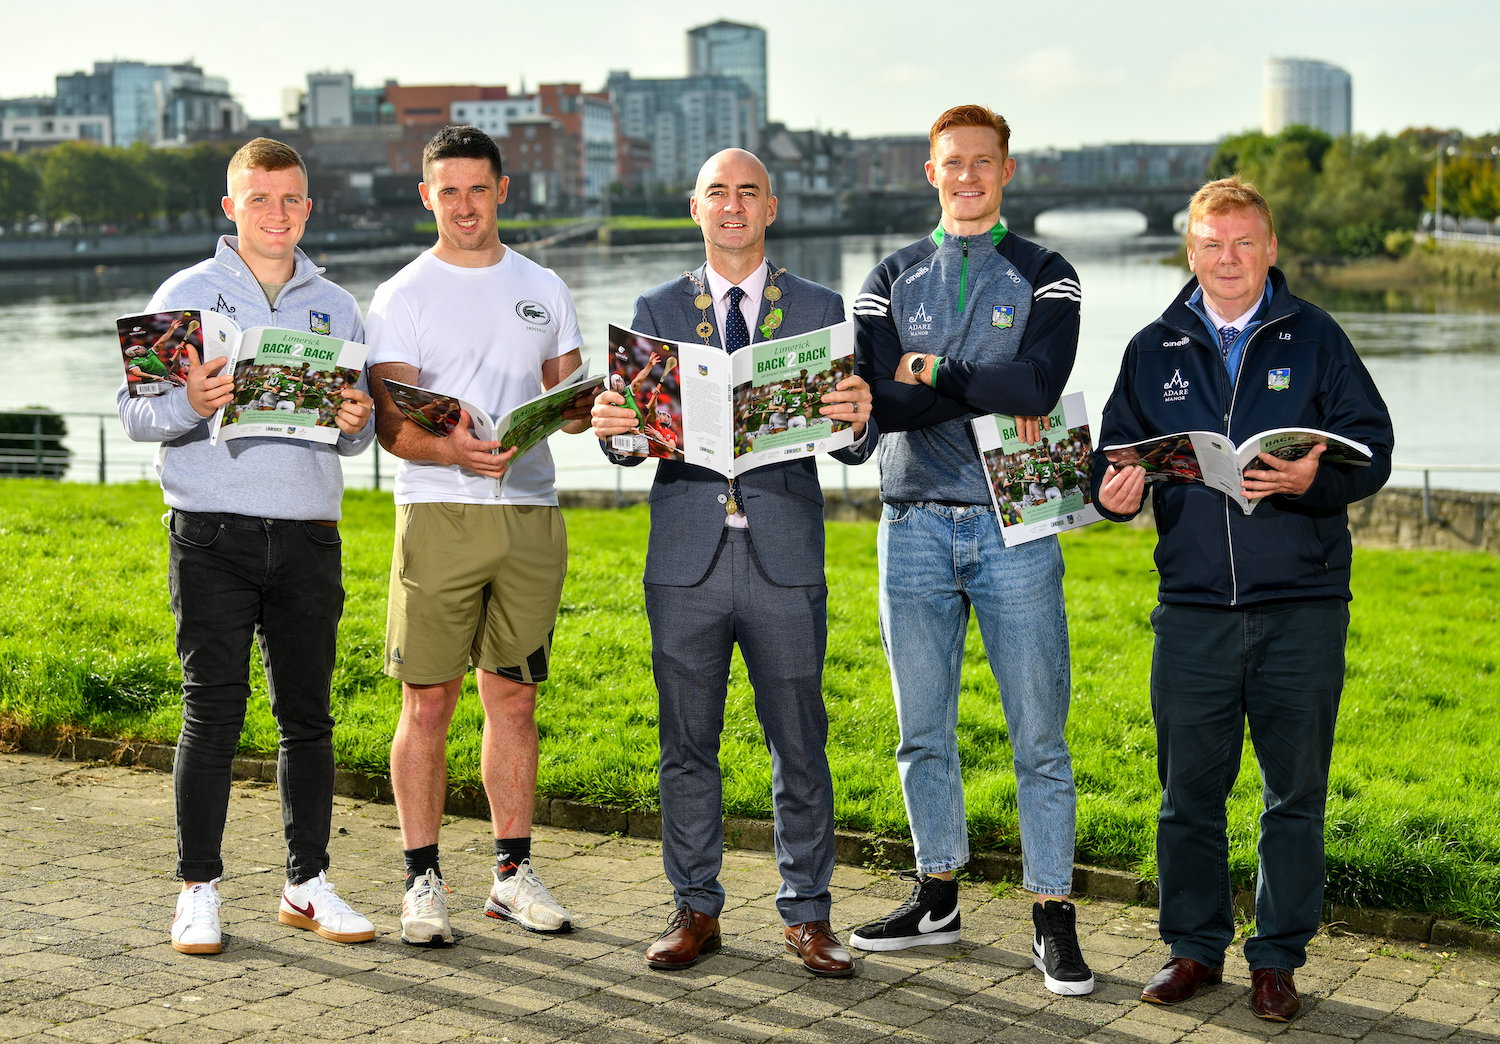 Daniel Butler, Mayor of the City and County of Limerick, centre, with Limerick hurlers, from left, Peter Casey, Darragh O'Donovan and William O'Donoghue and Limerick county board treasurer Liam Bourke. Picture: Diarmuid Greene/Sportsfile